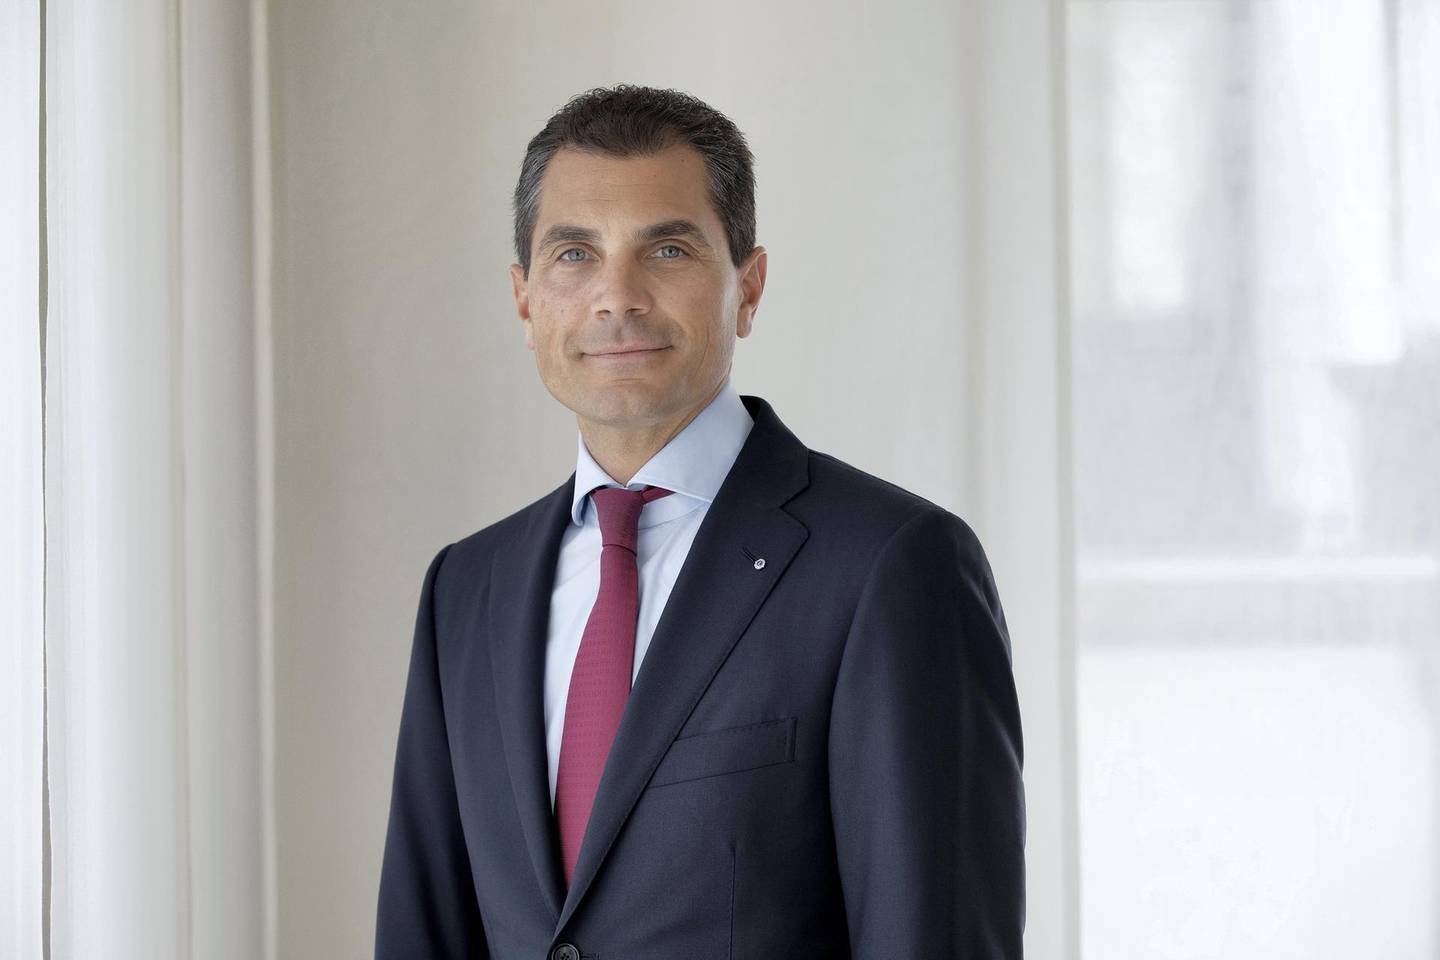 Daniel Savary, Global Head Middle East & Africa at Pictet Wealth Management. Courtesy Pictet